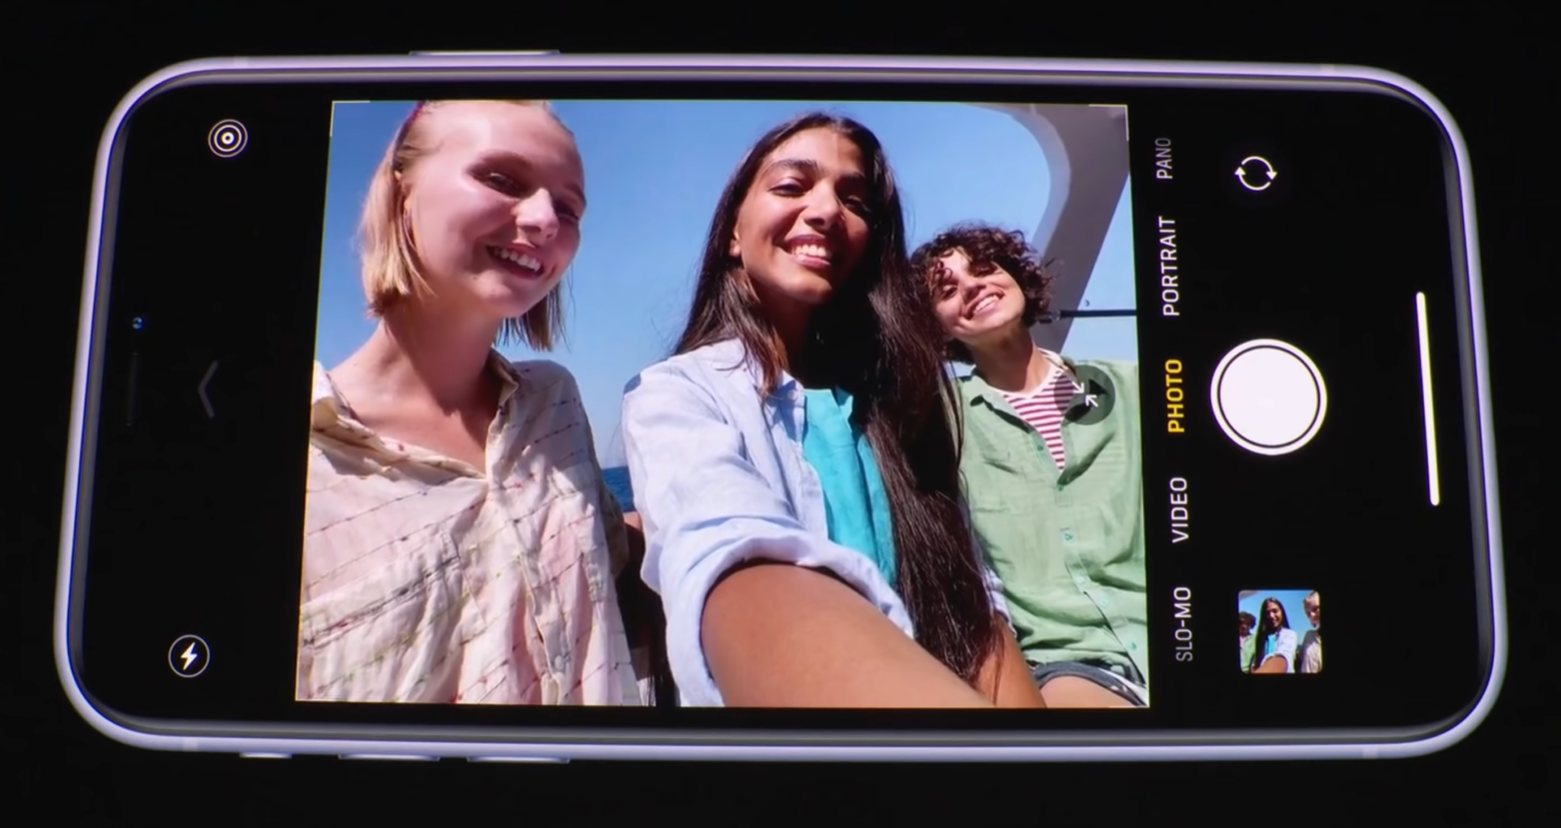 When held in landscape, the front facing camera will automatically switch to a wide angle lense (Source: Apple